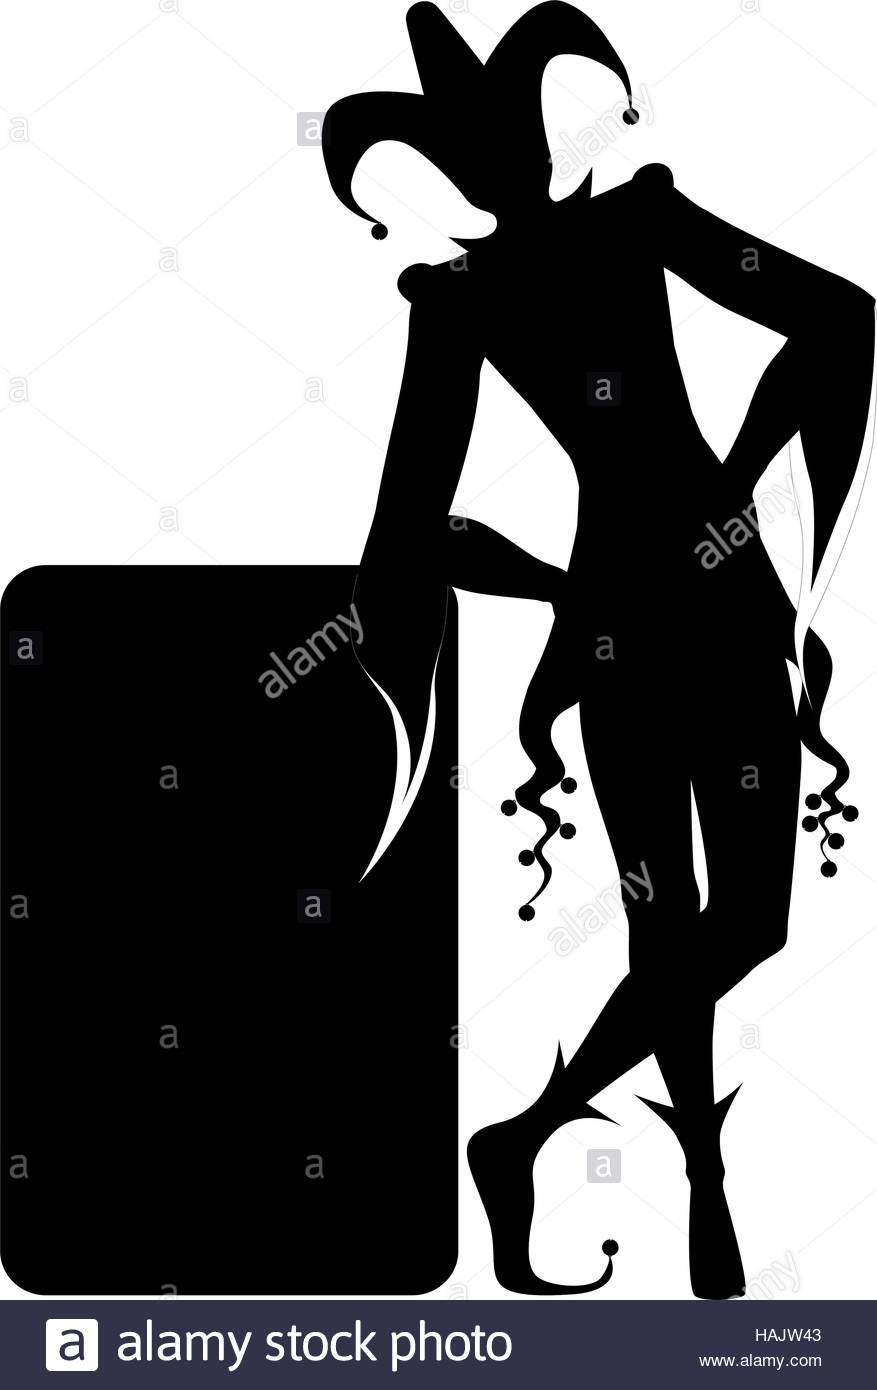 The black joker silhouette and playing card